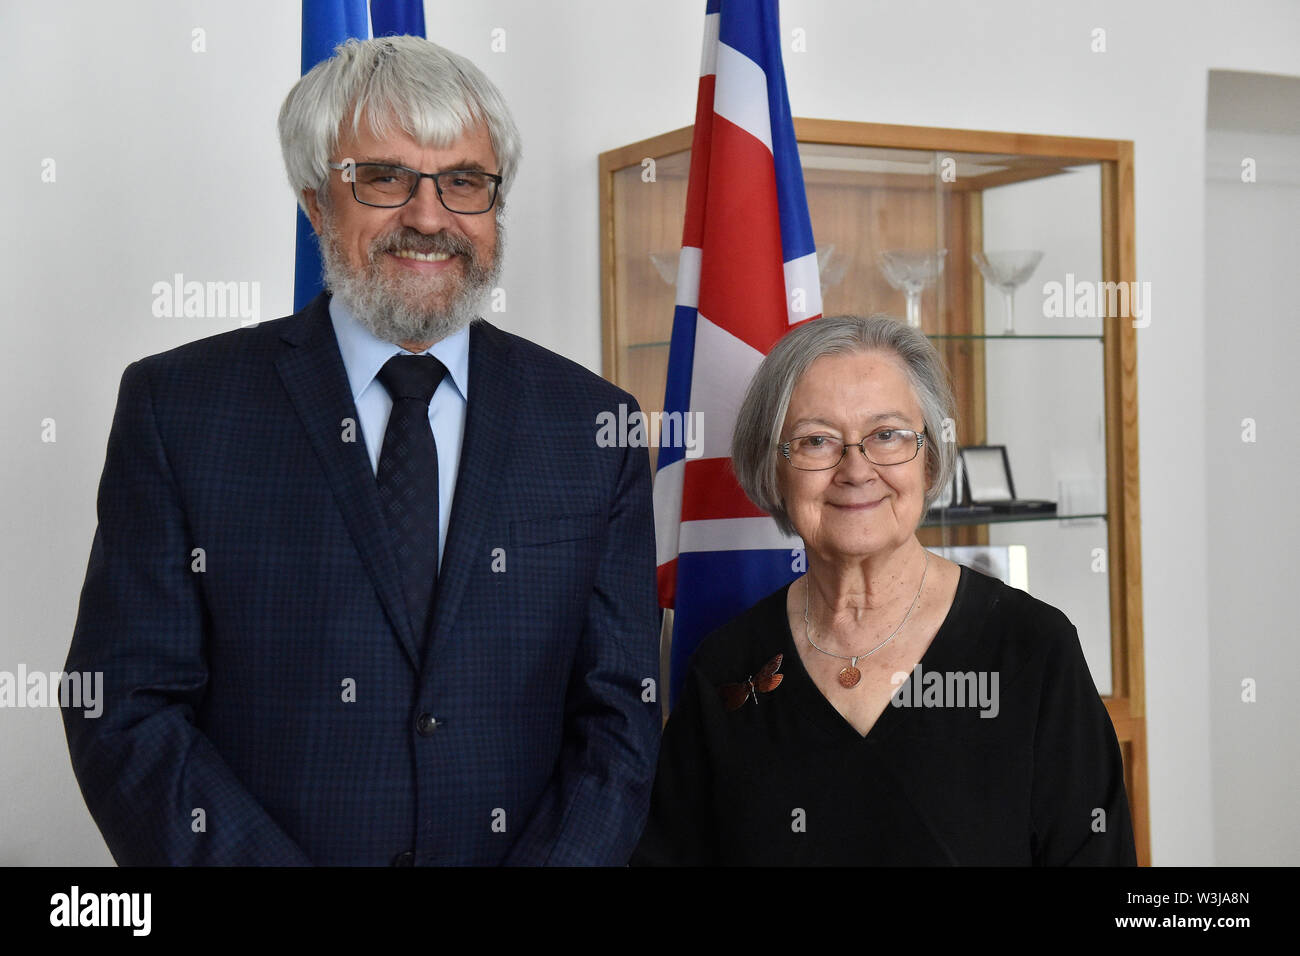 Brno, Czech Republic. 16th July, 2019. Brenda Hale (right), President of the Supreme Court of the United Kingdom, meets with her Czech counterpart Pavel Samal (left), on July 16, 2019, in Brno, Czech Republic. Credit: Vaclav Salek/CTK Photo/Alamy Live News Stock Photo